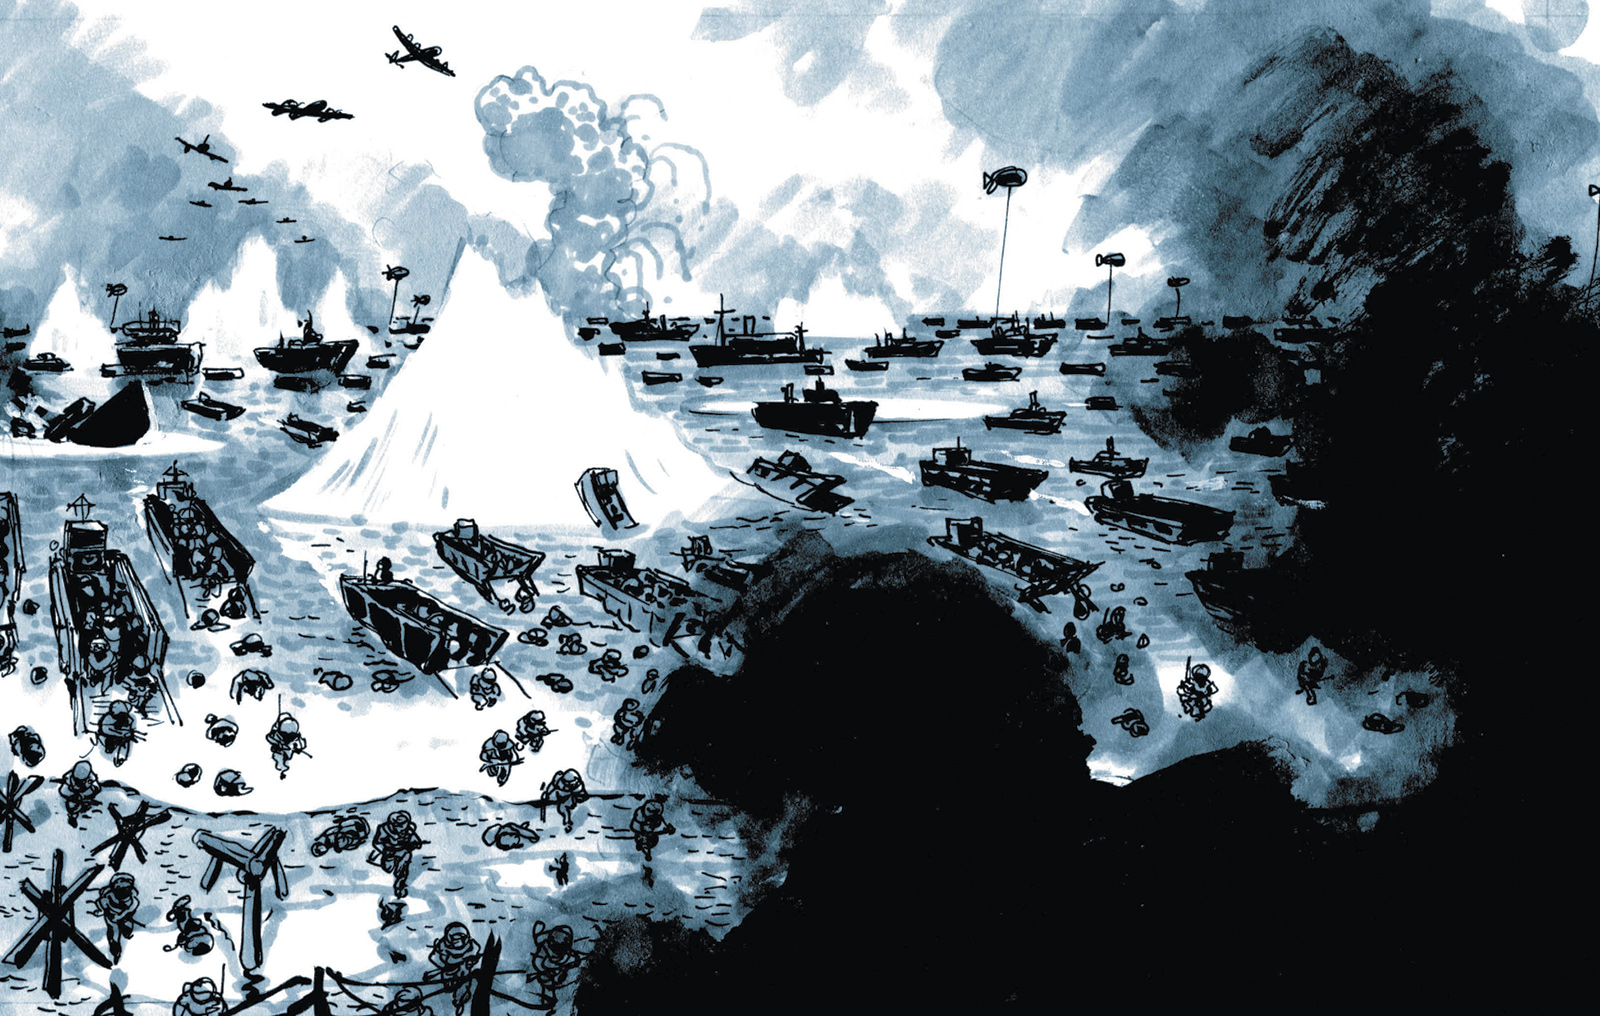 A drawing by Dominique Bertail from Omaha Beach on D-Day, which also includes Robert Capa's photographs of the invasion